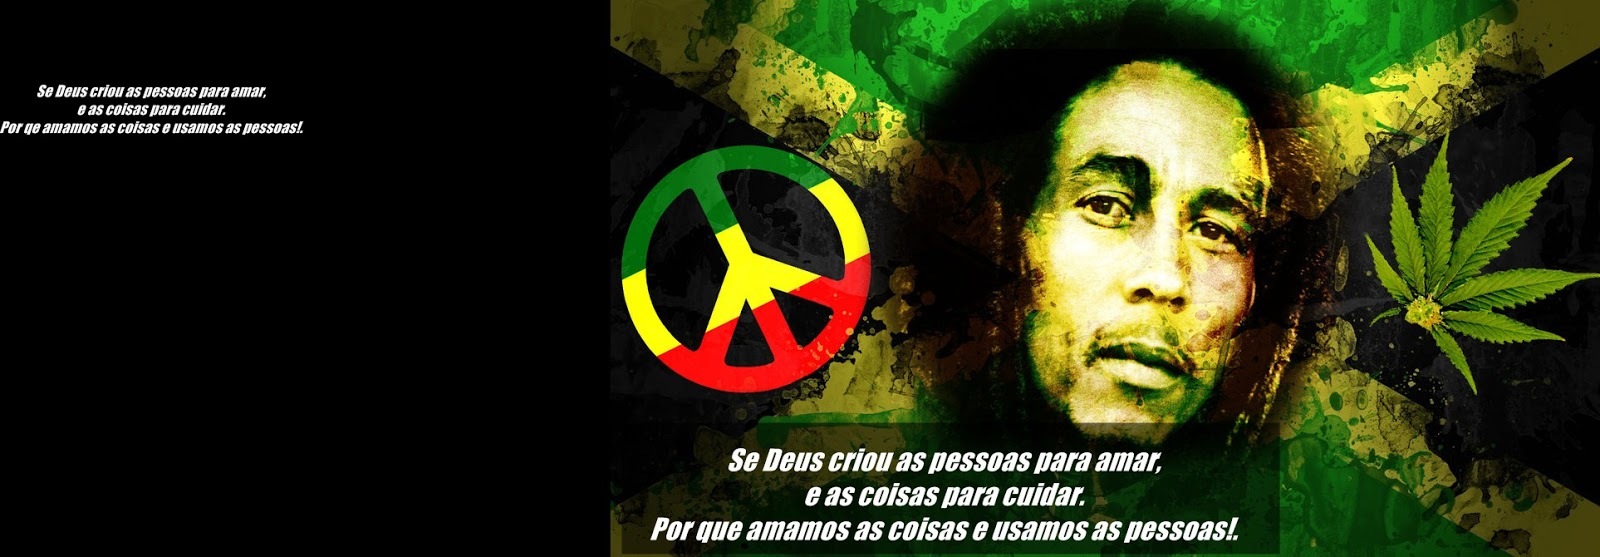 Frases Do Coringa Pensador Para Facebook: Tudo Para MSN, ORKUT,FACEBOOK E Etc...: Frases Do Bob Marley